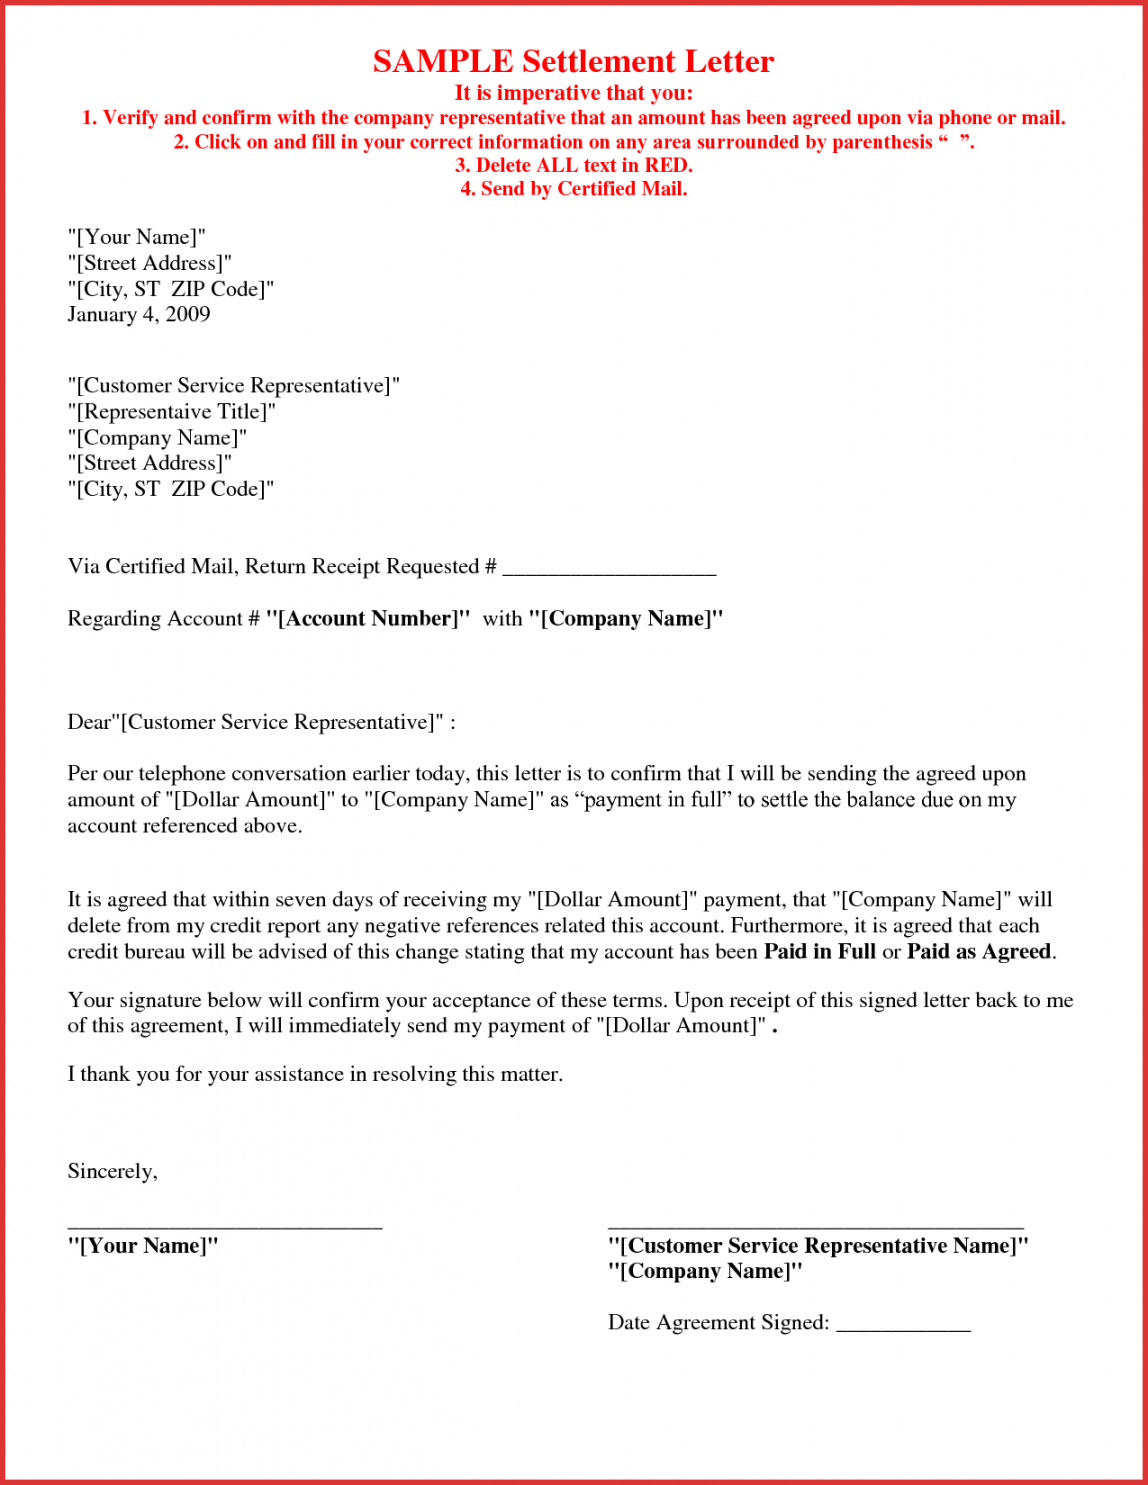 Printable Debt Collection Settlement Letter Template Excel Example